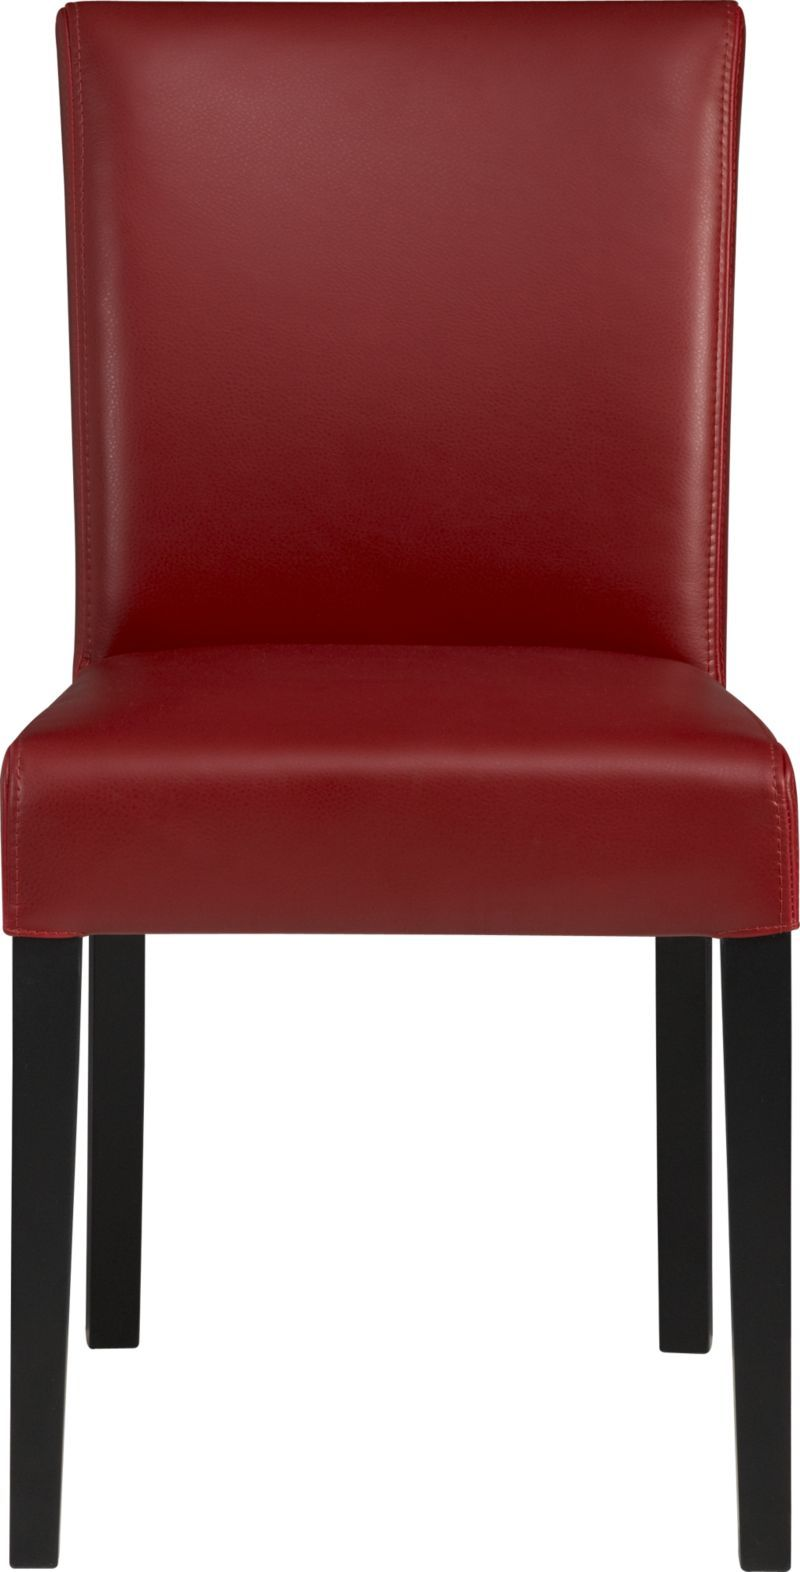 Lowe Red Leather Side Chair In Dining Chairs Crate And Barrel Leather Side Chair Chair Modern Dining Chairs